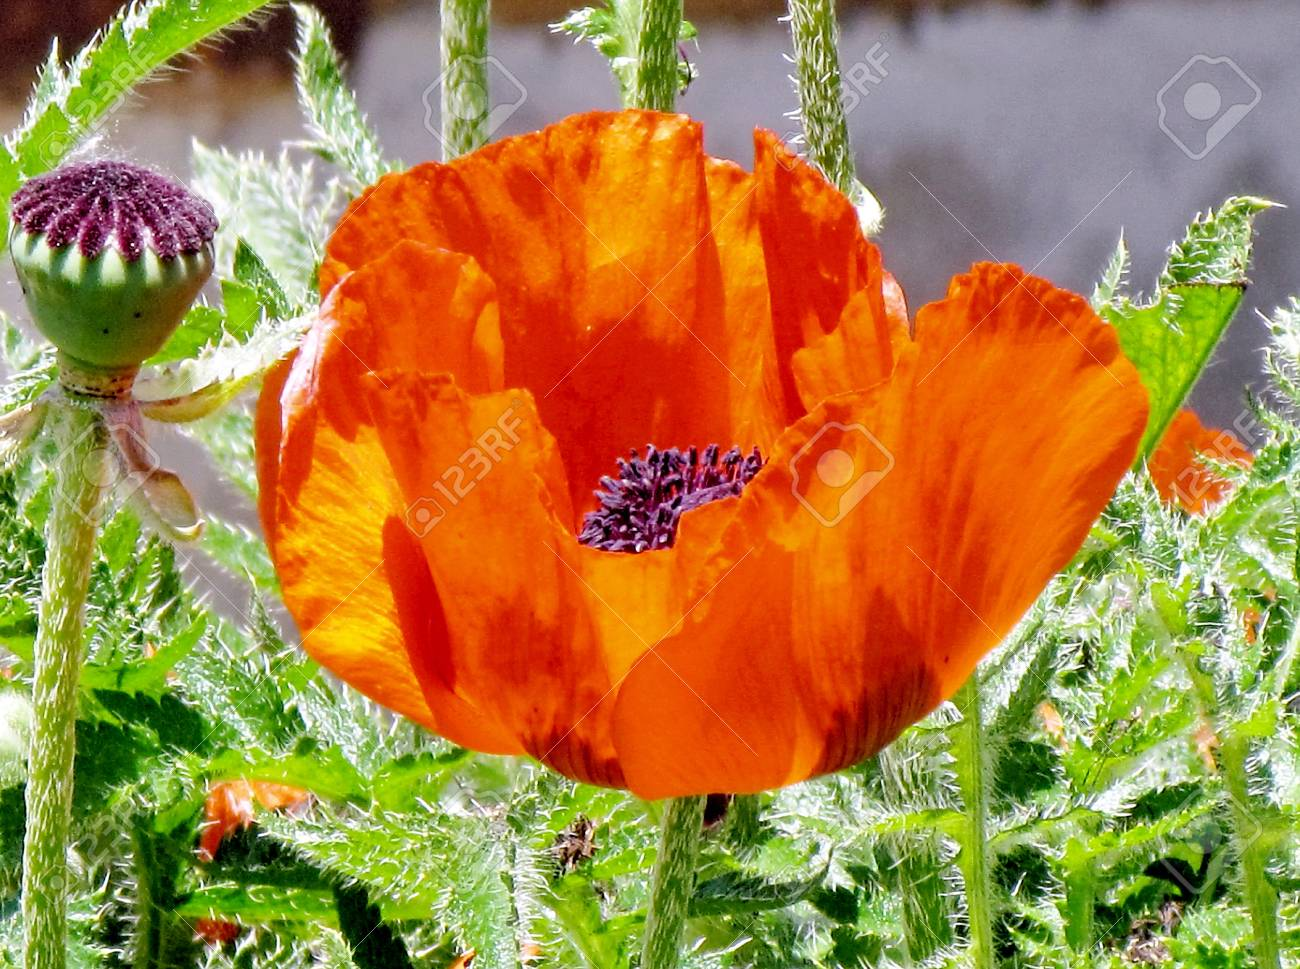 Poppy Flower In Thornhill Canada June 15 2014 Stock Photo